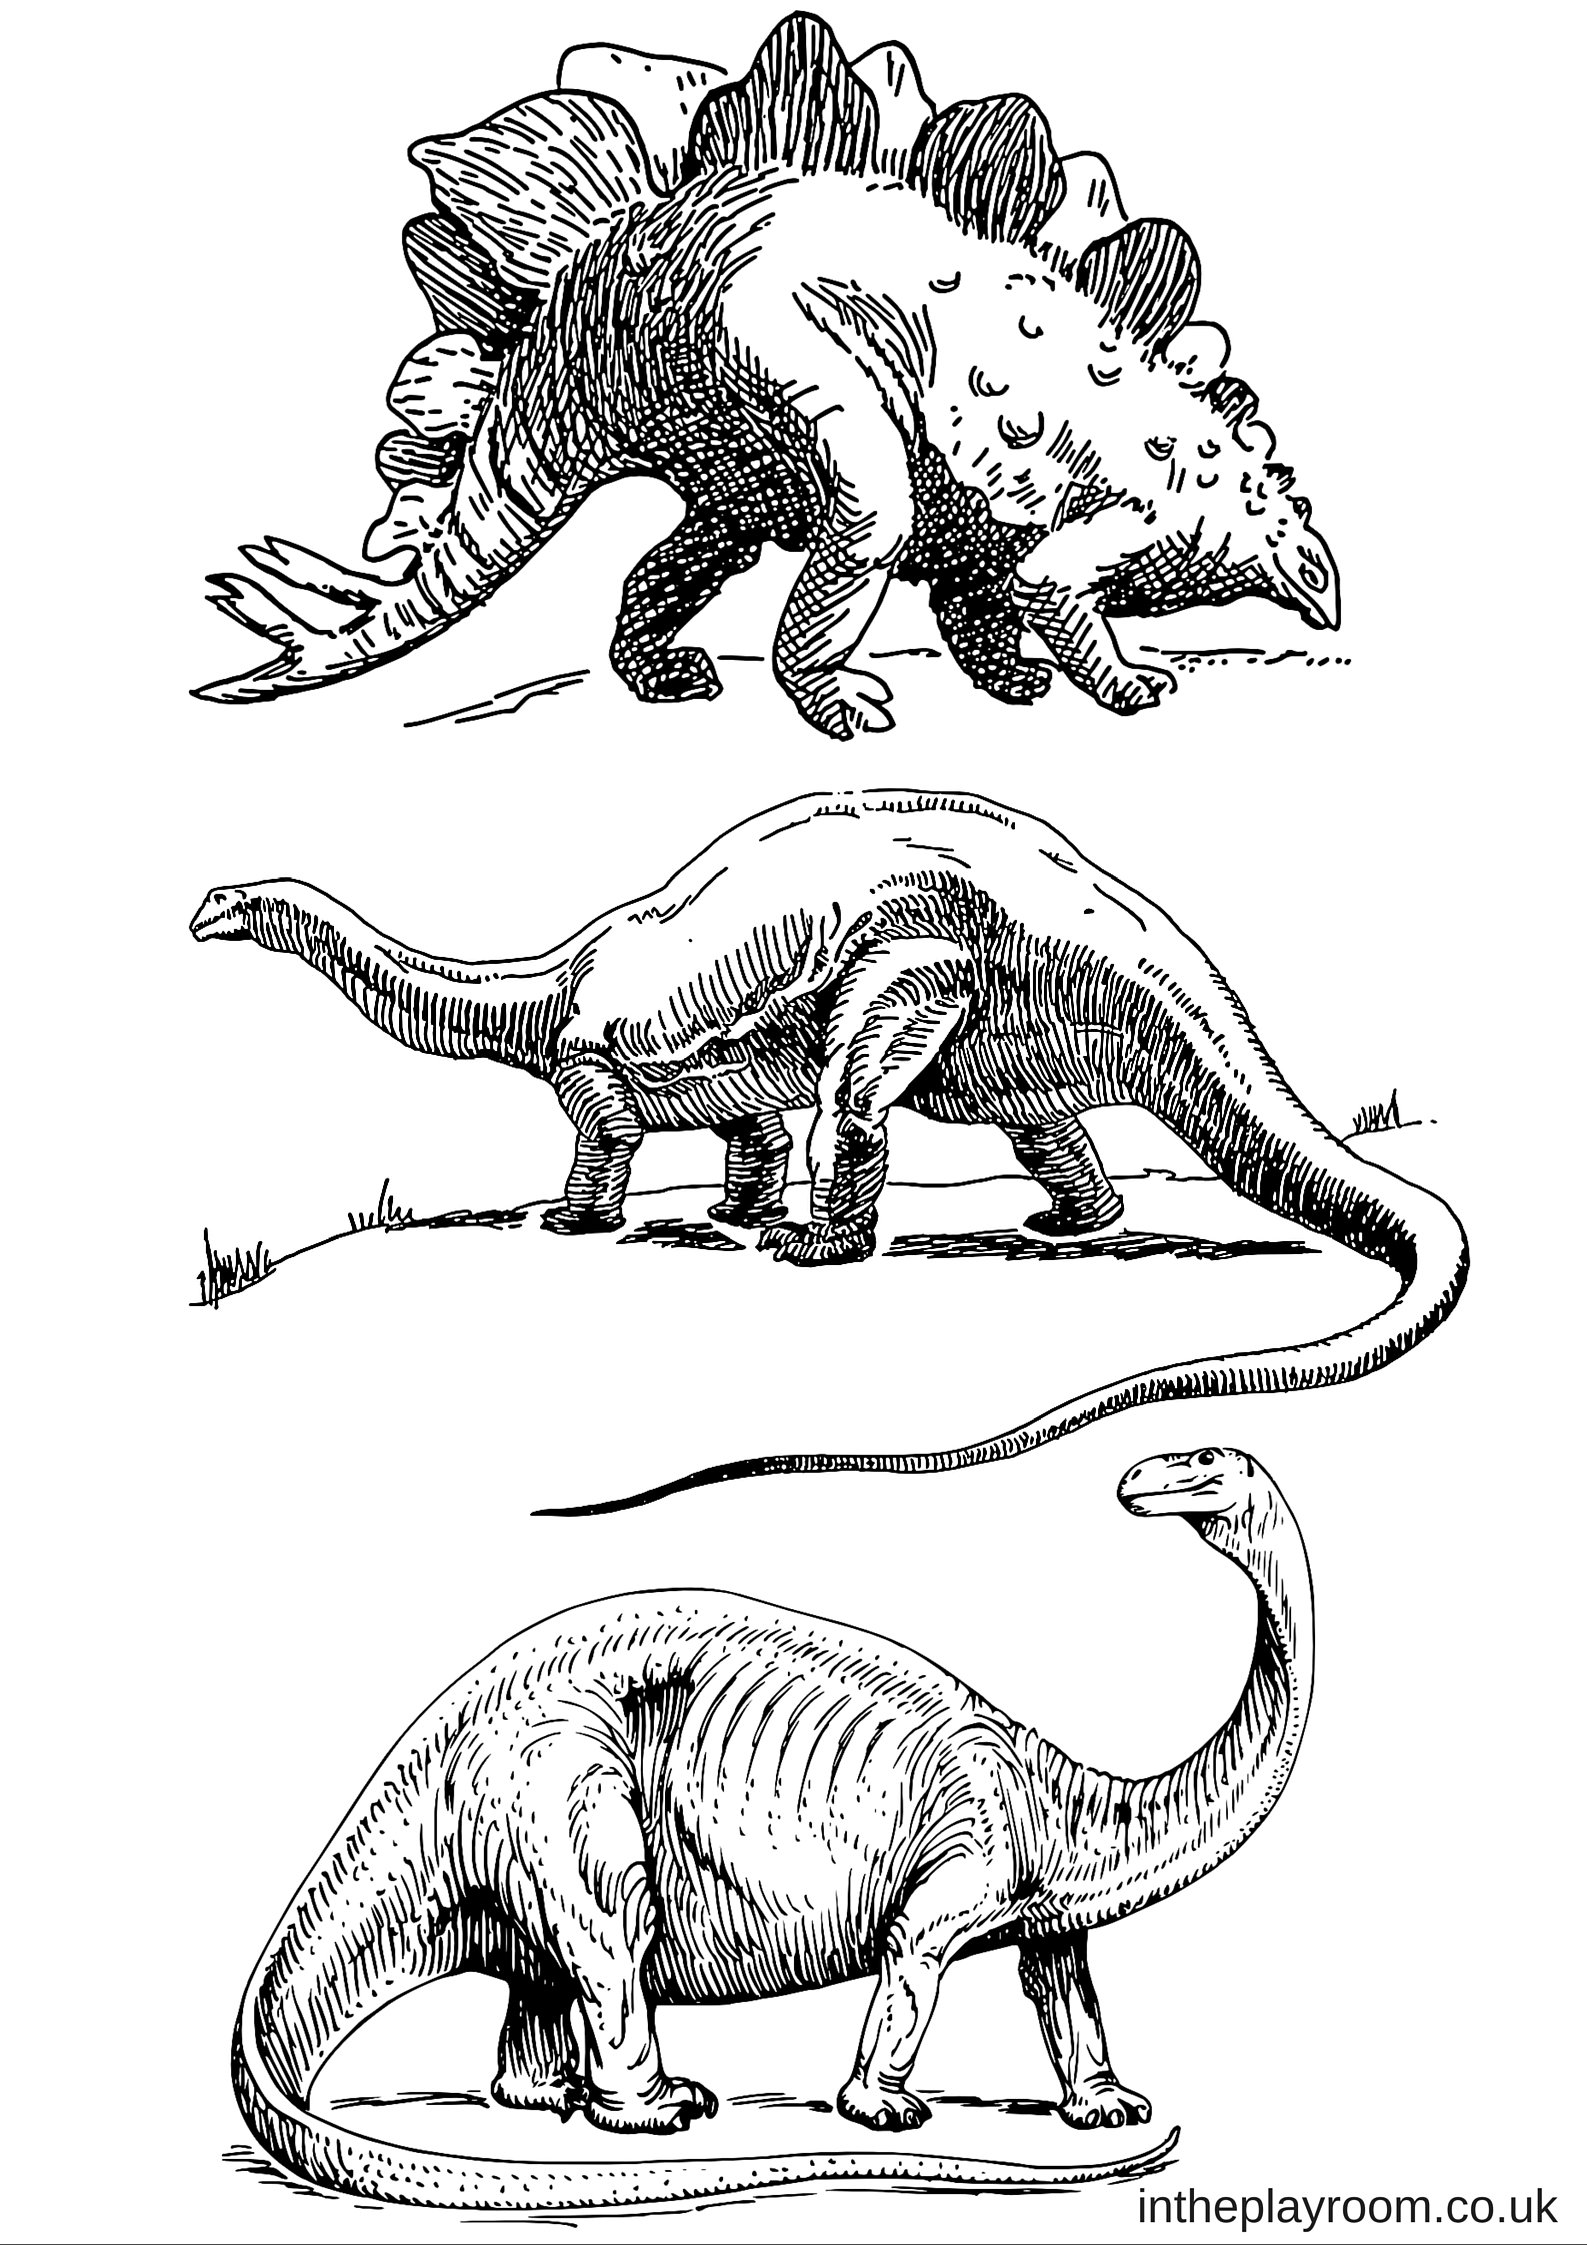 dinosaur images dinosaur colouring pages in the playroom images dinosaur